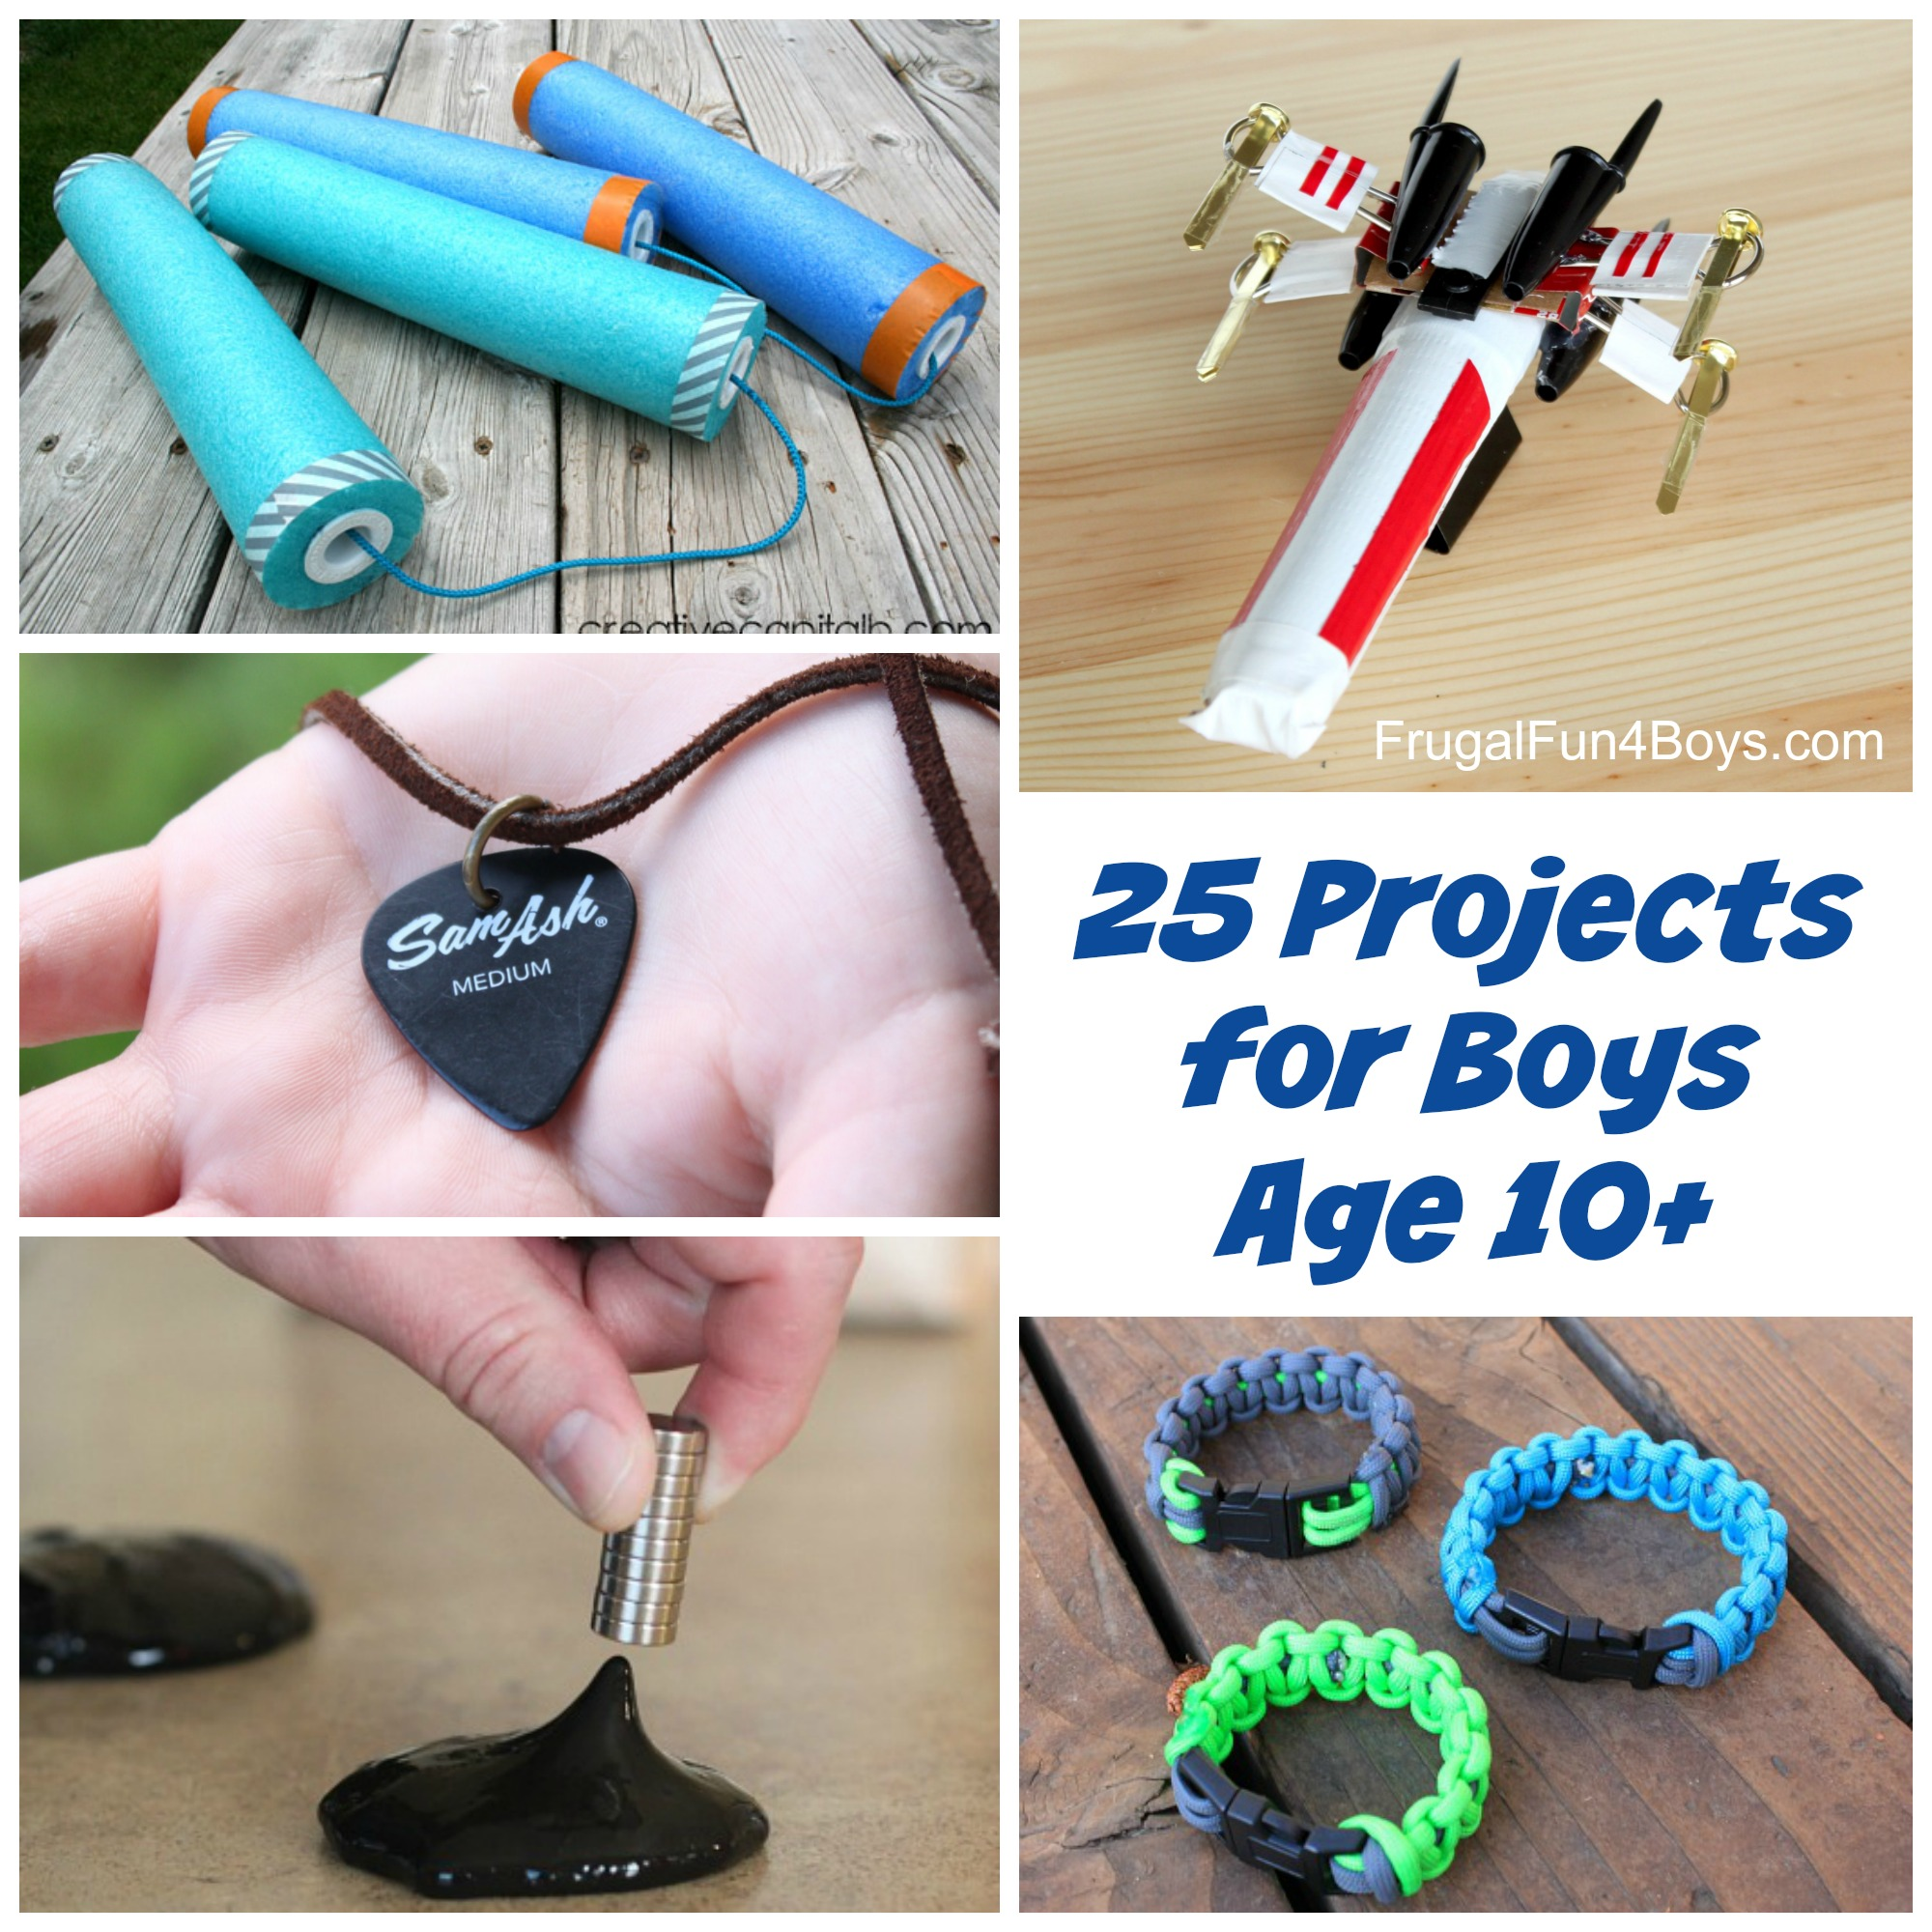 25 Awesome Projects for Boys Age 10+